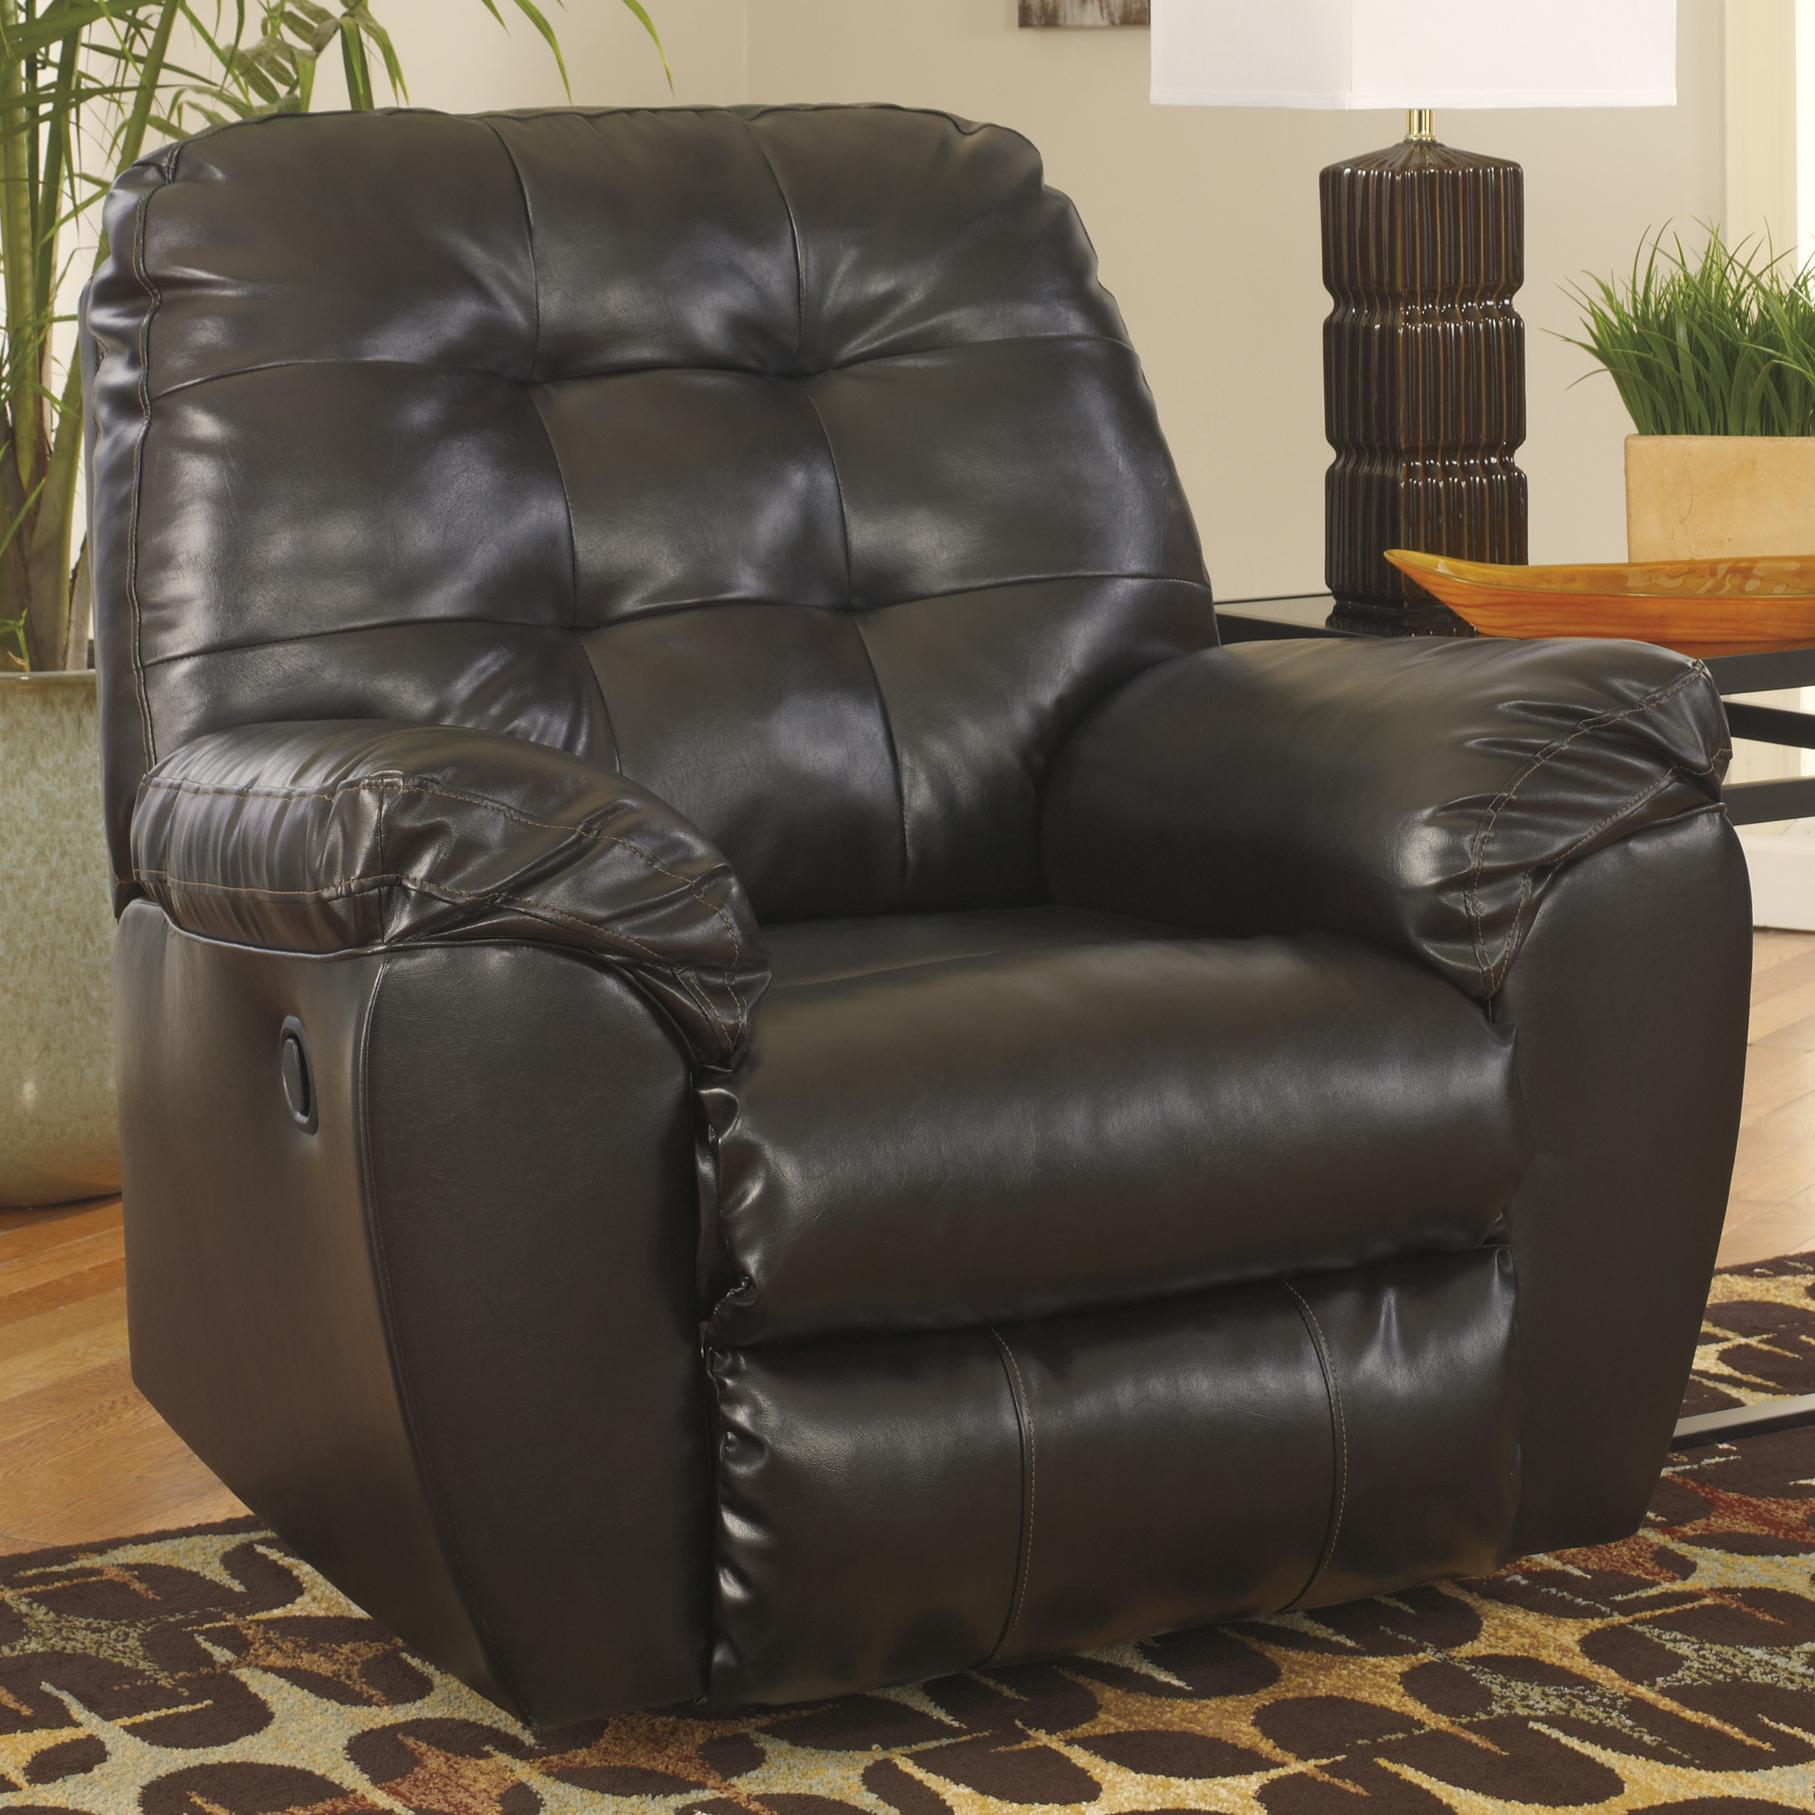 signature design by ashley alliston durablend chocolate rocker recliner item number - Leather Rocker Recliner